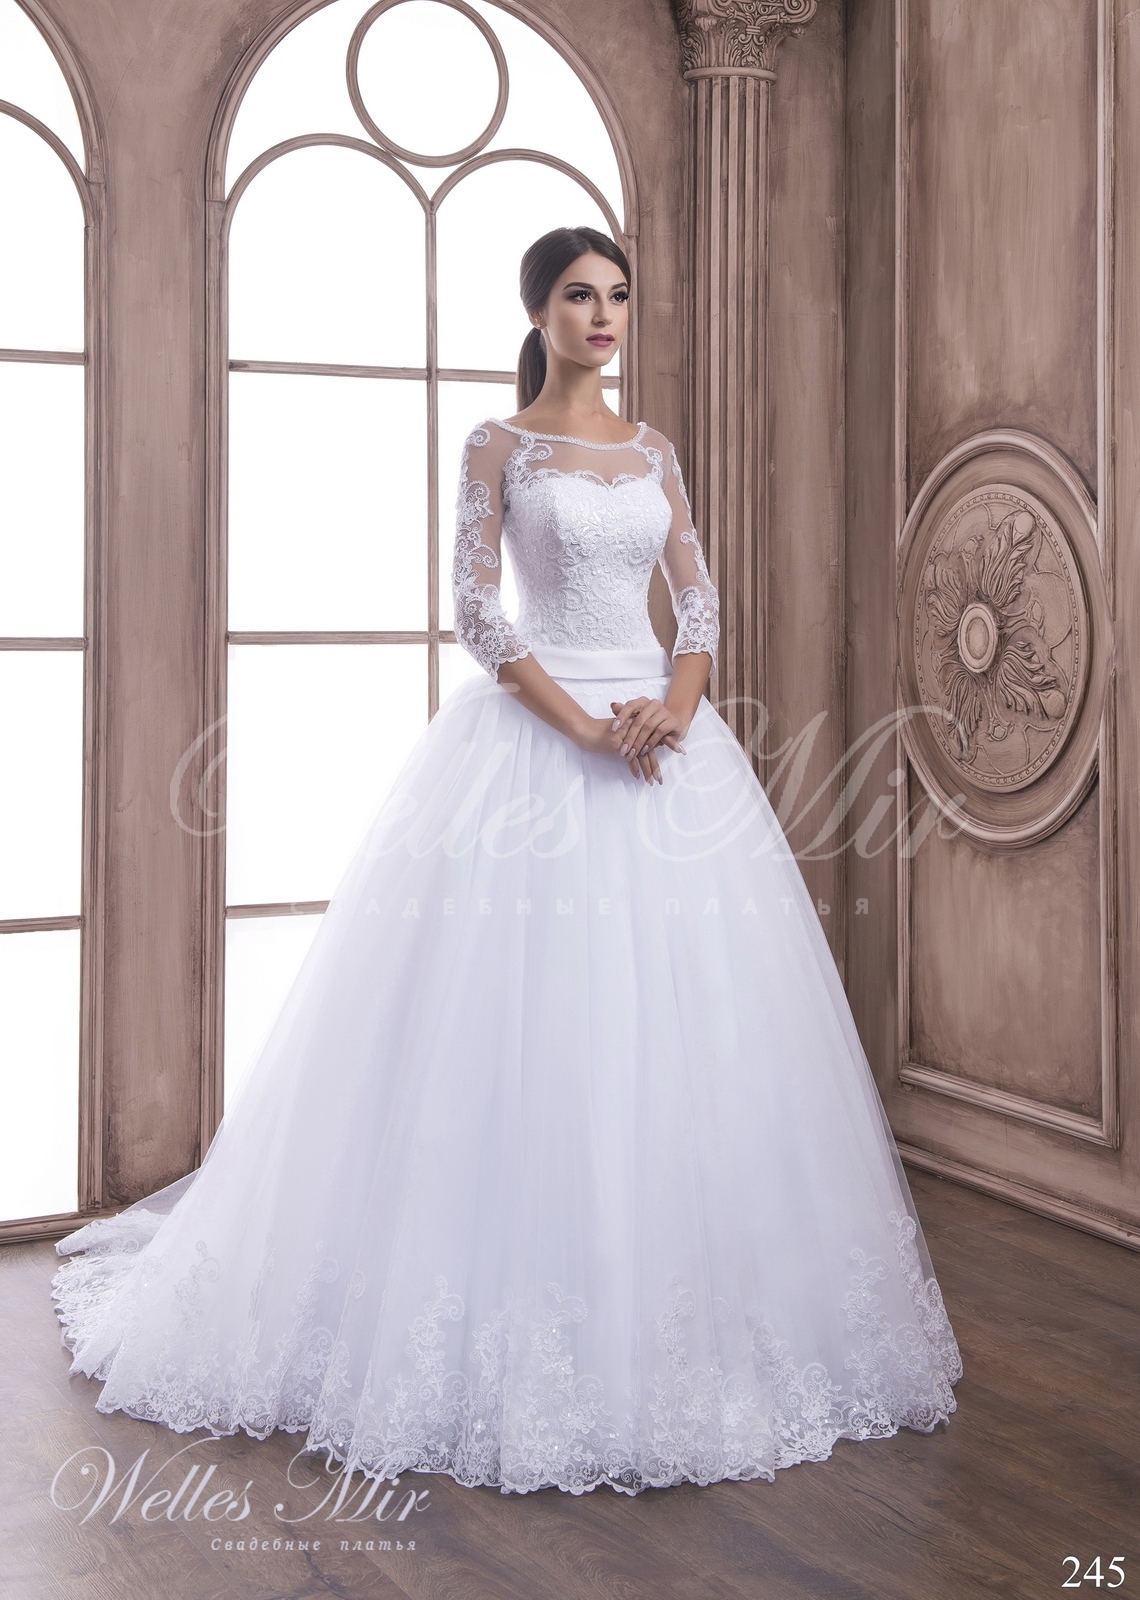 Wedding dresses 245